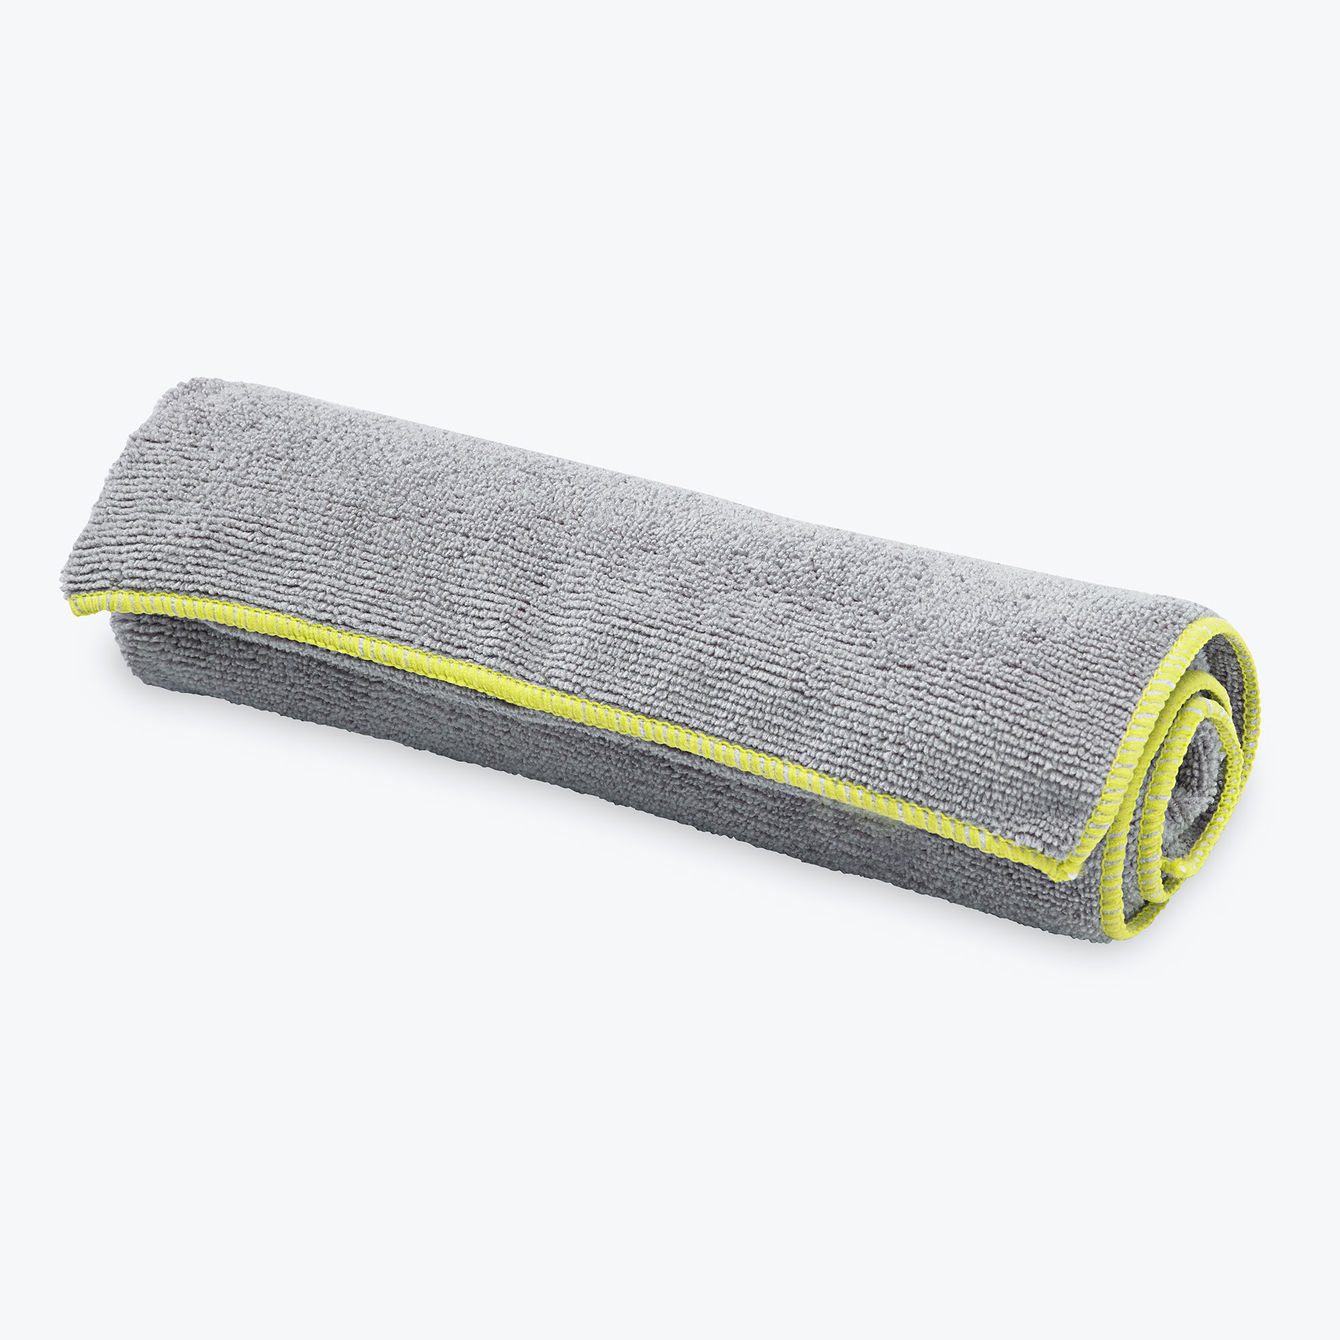 Gaiam Thirsty Yoga Hand Towel Gray/Citron